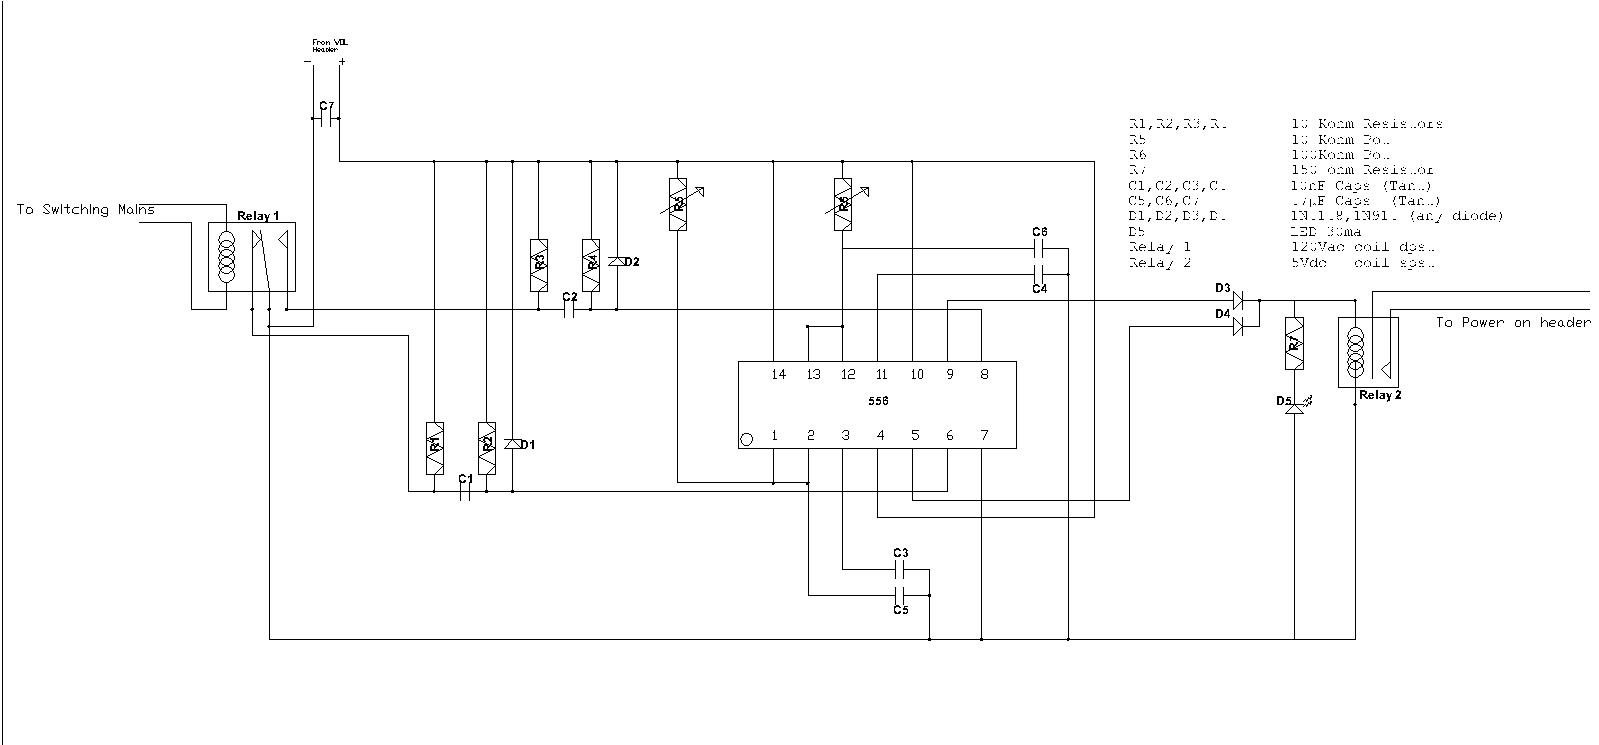 Layout Designs Relay Toggle Circuit Using A 556 Timer This Is The Last Im Doing With Idea For Now Below 2 Circuits They Do Same Thing Sort Of Monitor Cab Power State And Computer